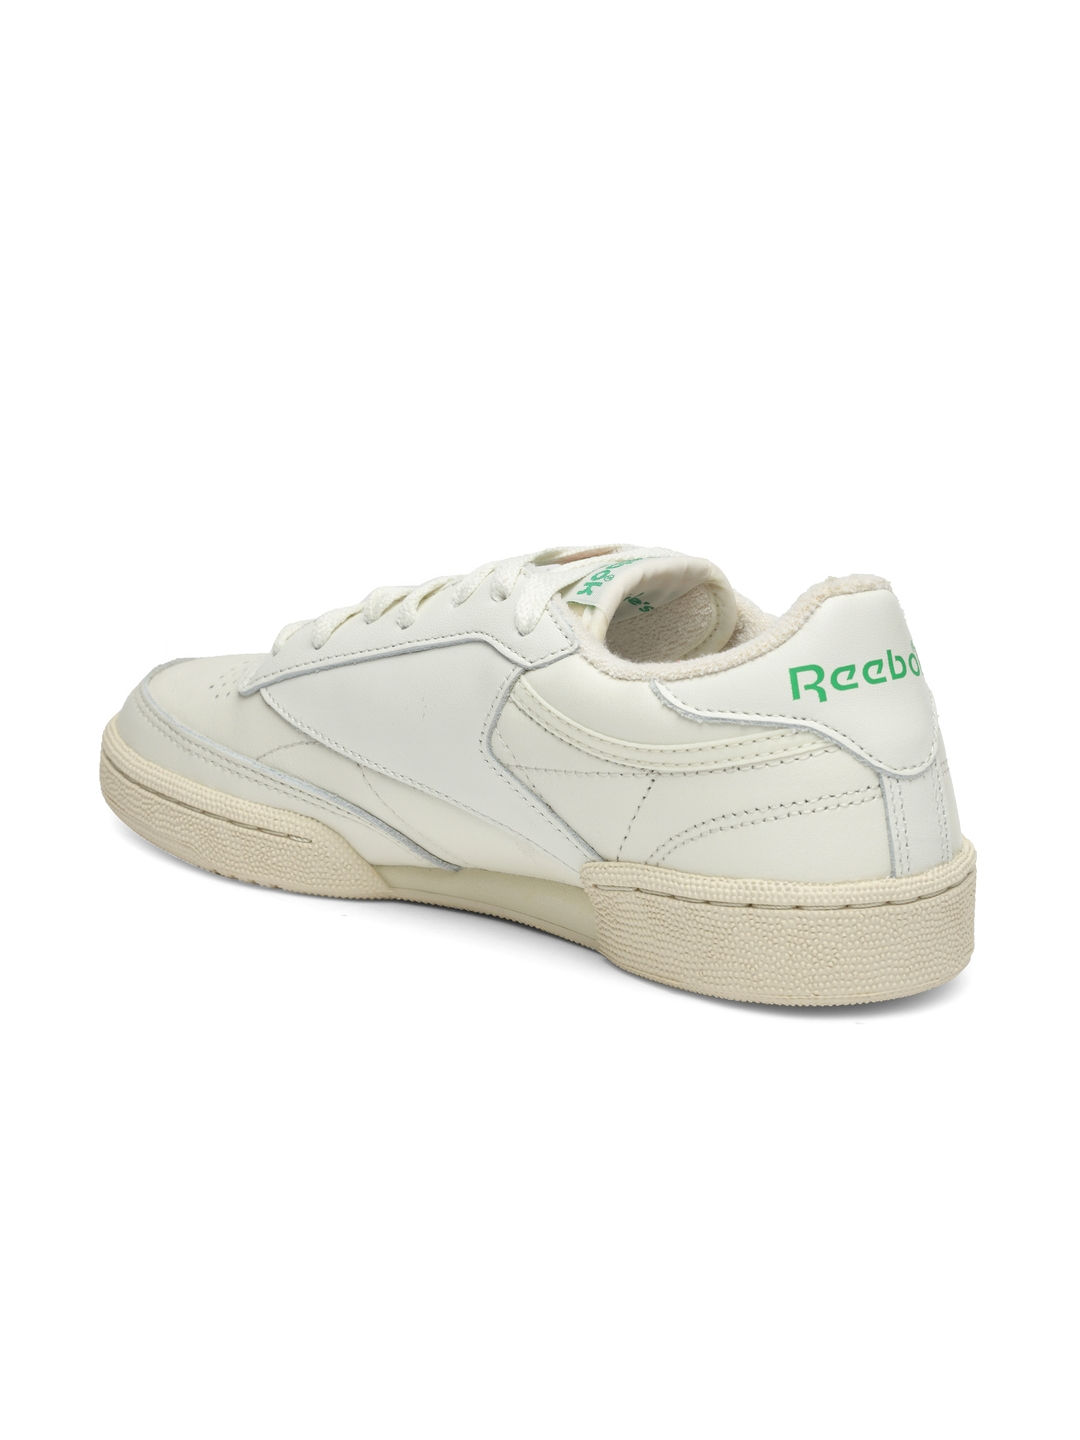 8c969b76d0cd5 Reebok Classic Women Off-White Club C 85 Vintage Leather Sneakers